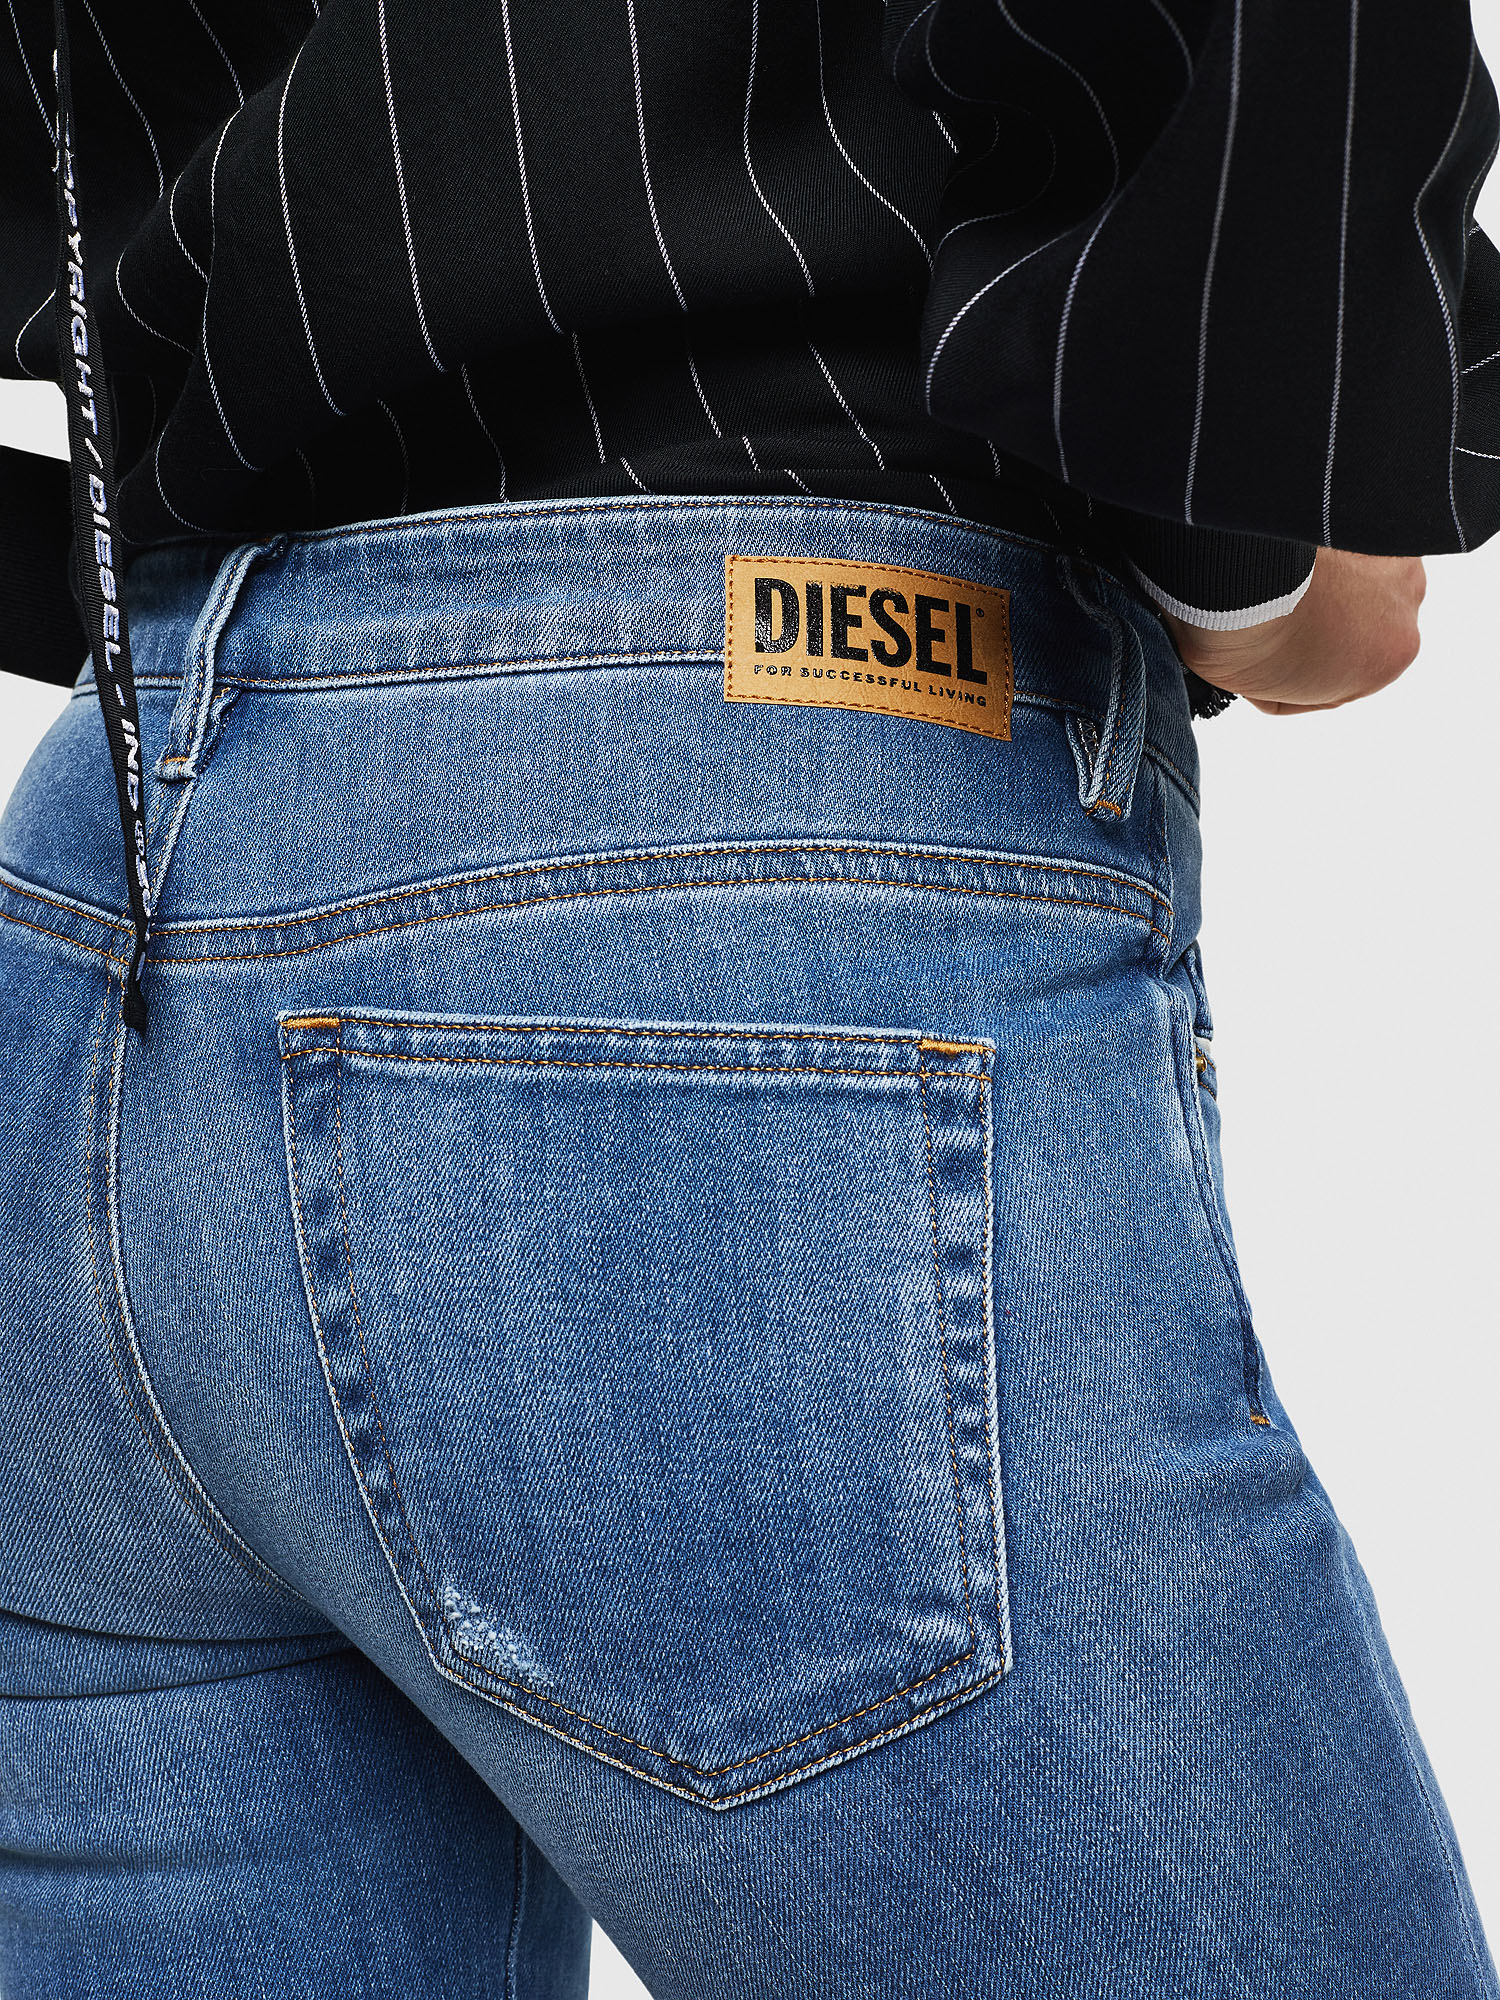 Diesel - D-Rifty 083AX,  - Jeans - Image 3